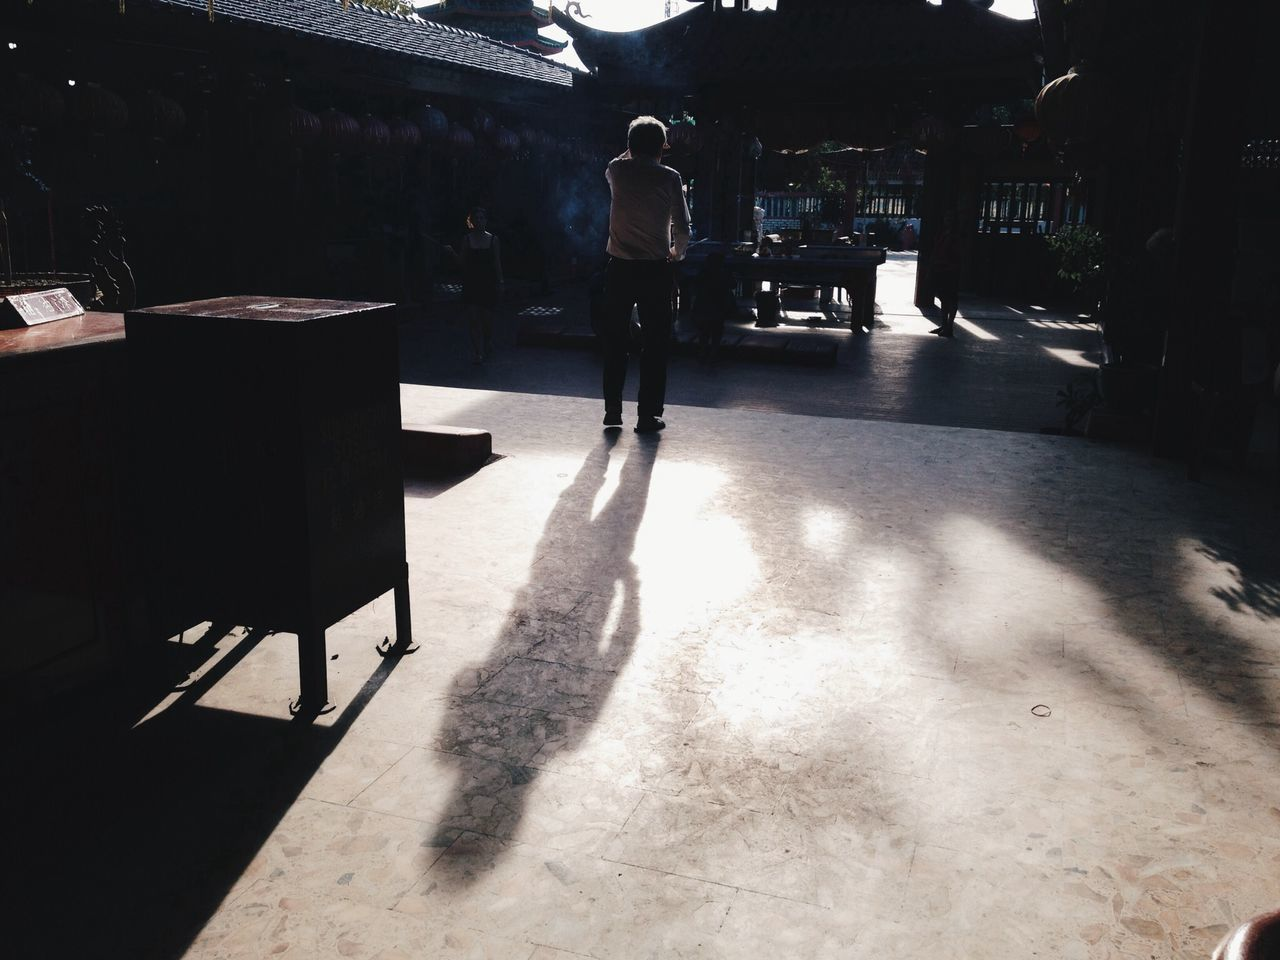 full length, one person, real people, shadow, standing, men, rear view, one man only, sunlight, built structure, lifestyles, day, architecture, indoors, only men, adult, people